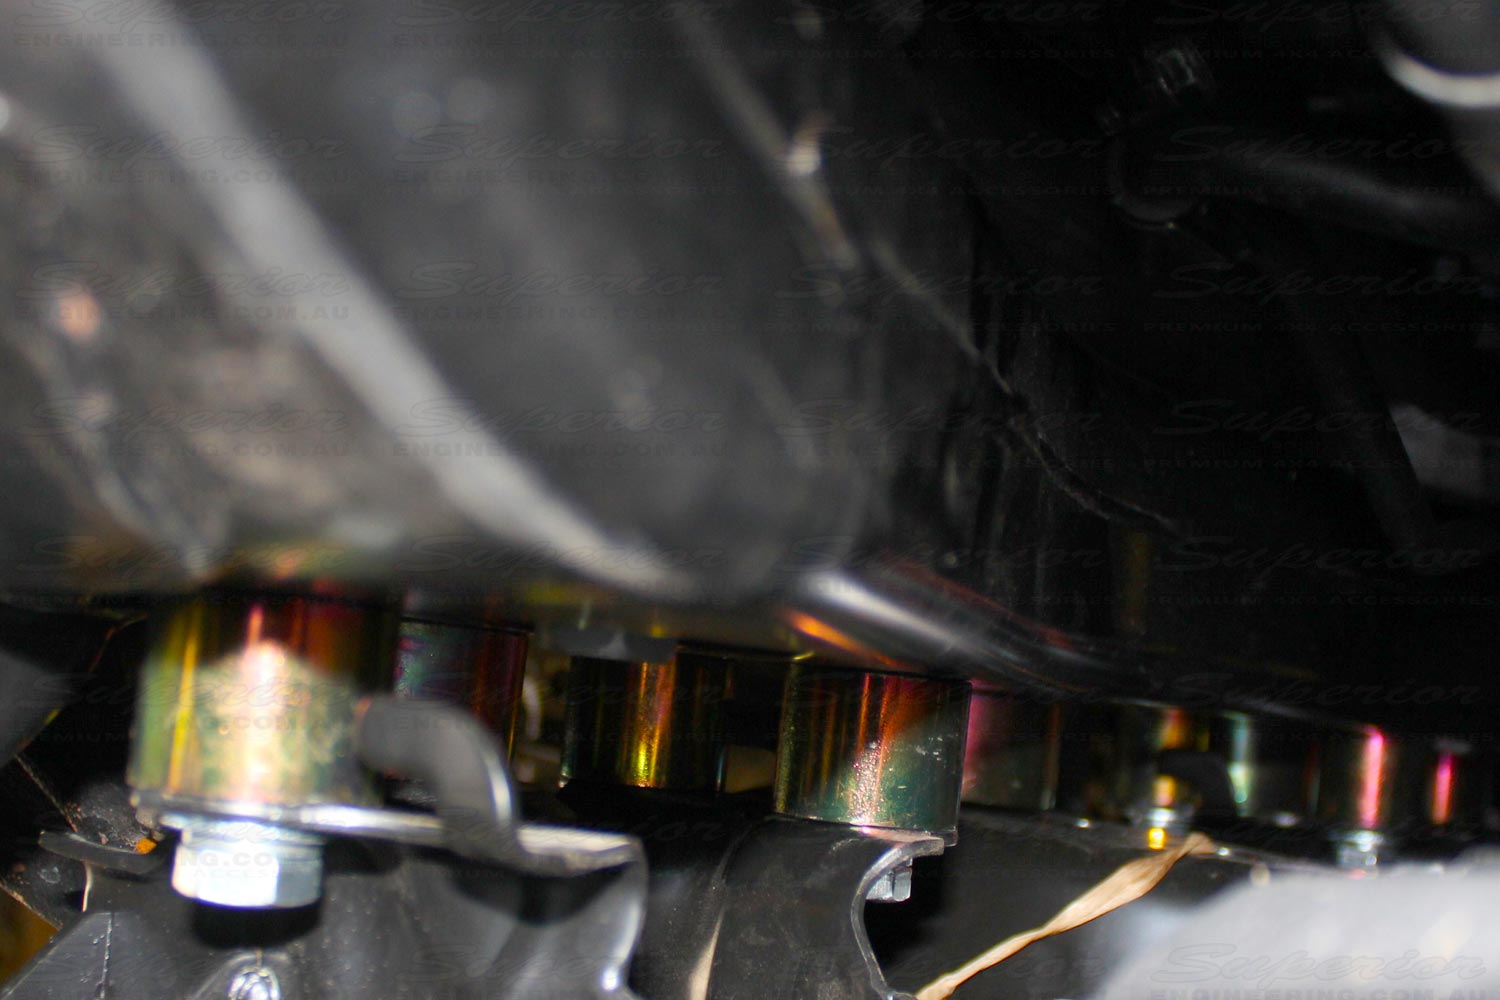 Closeup view of the Superior Diff Drop spacers fitted in the 200 Series